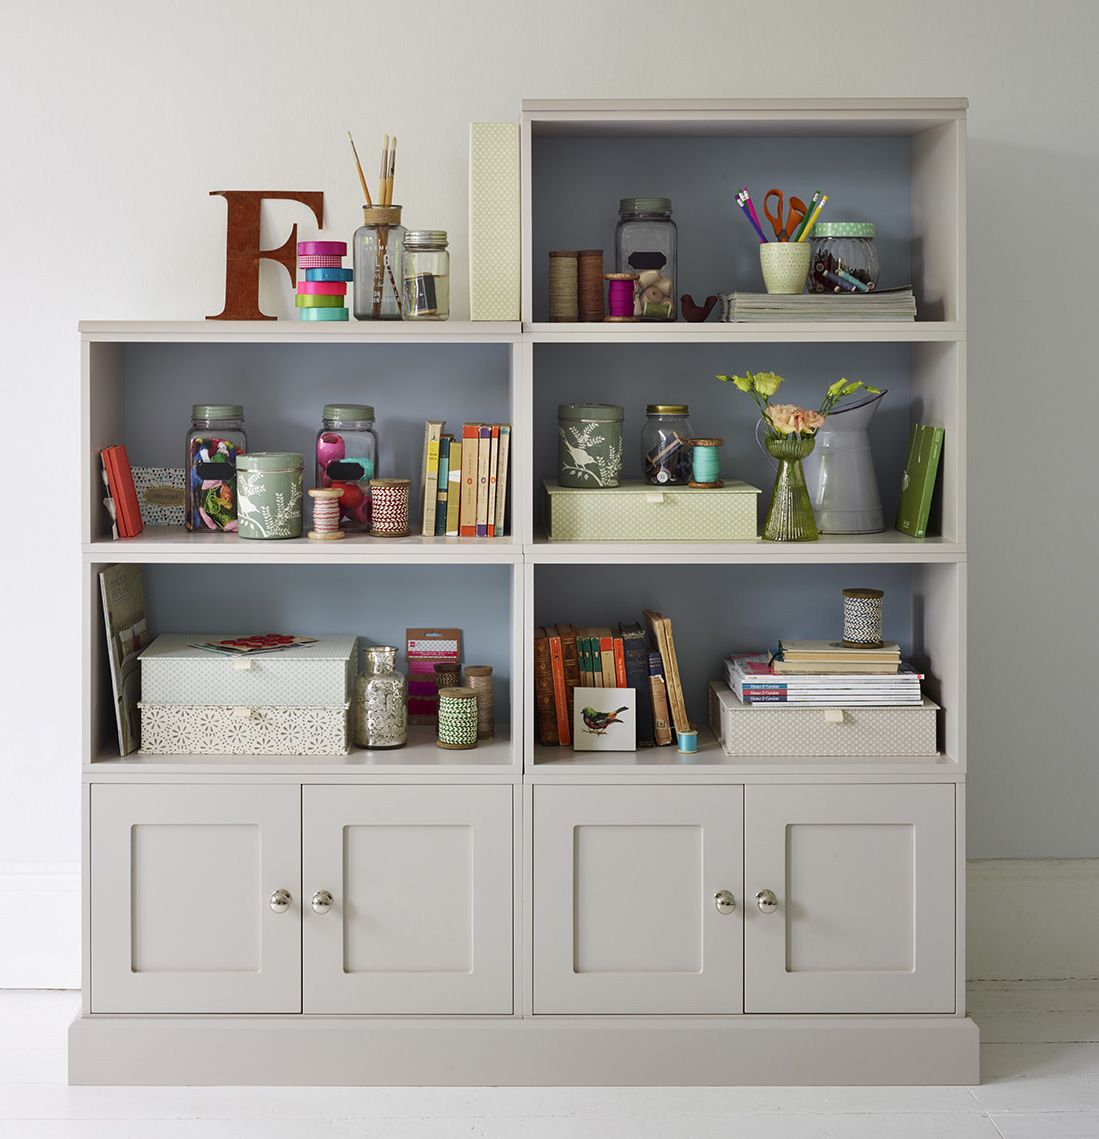 office wall organizer system. Office Wall Storage. Storage System Styled For Study H Organizer